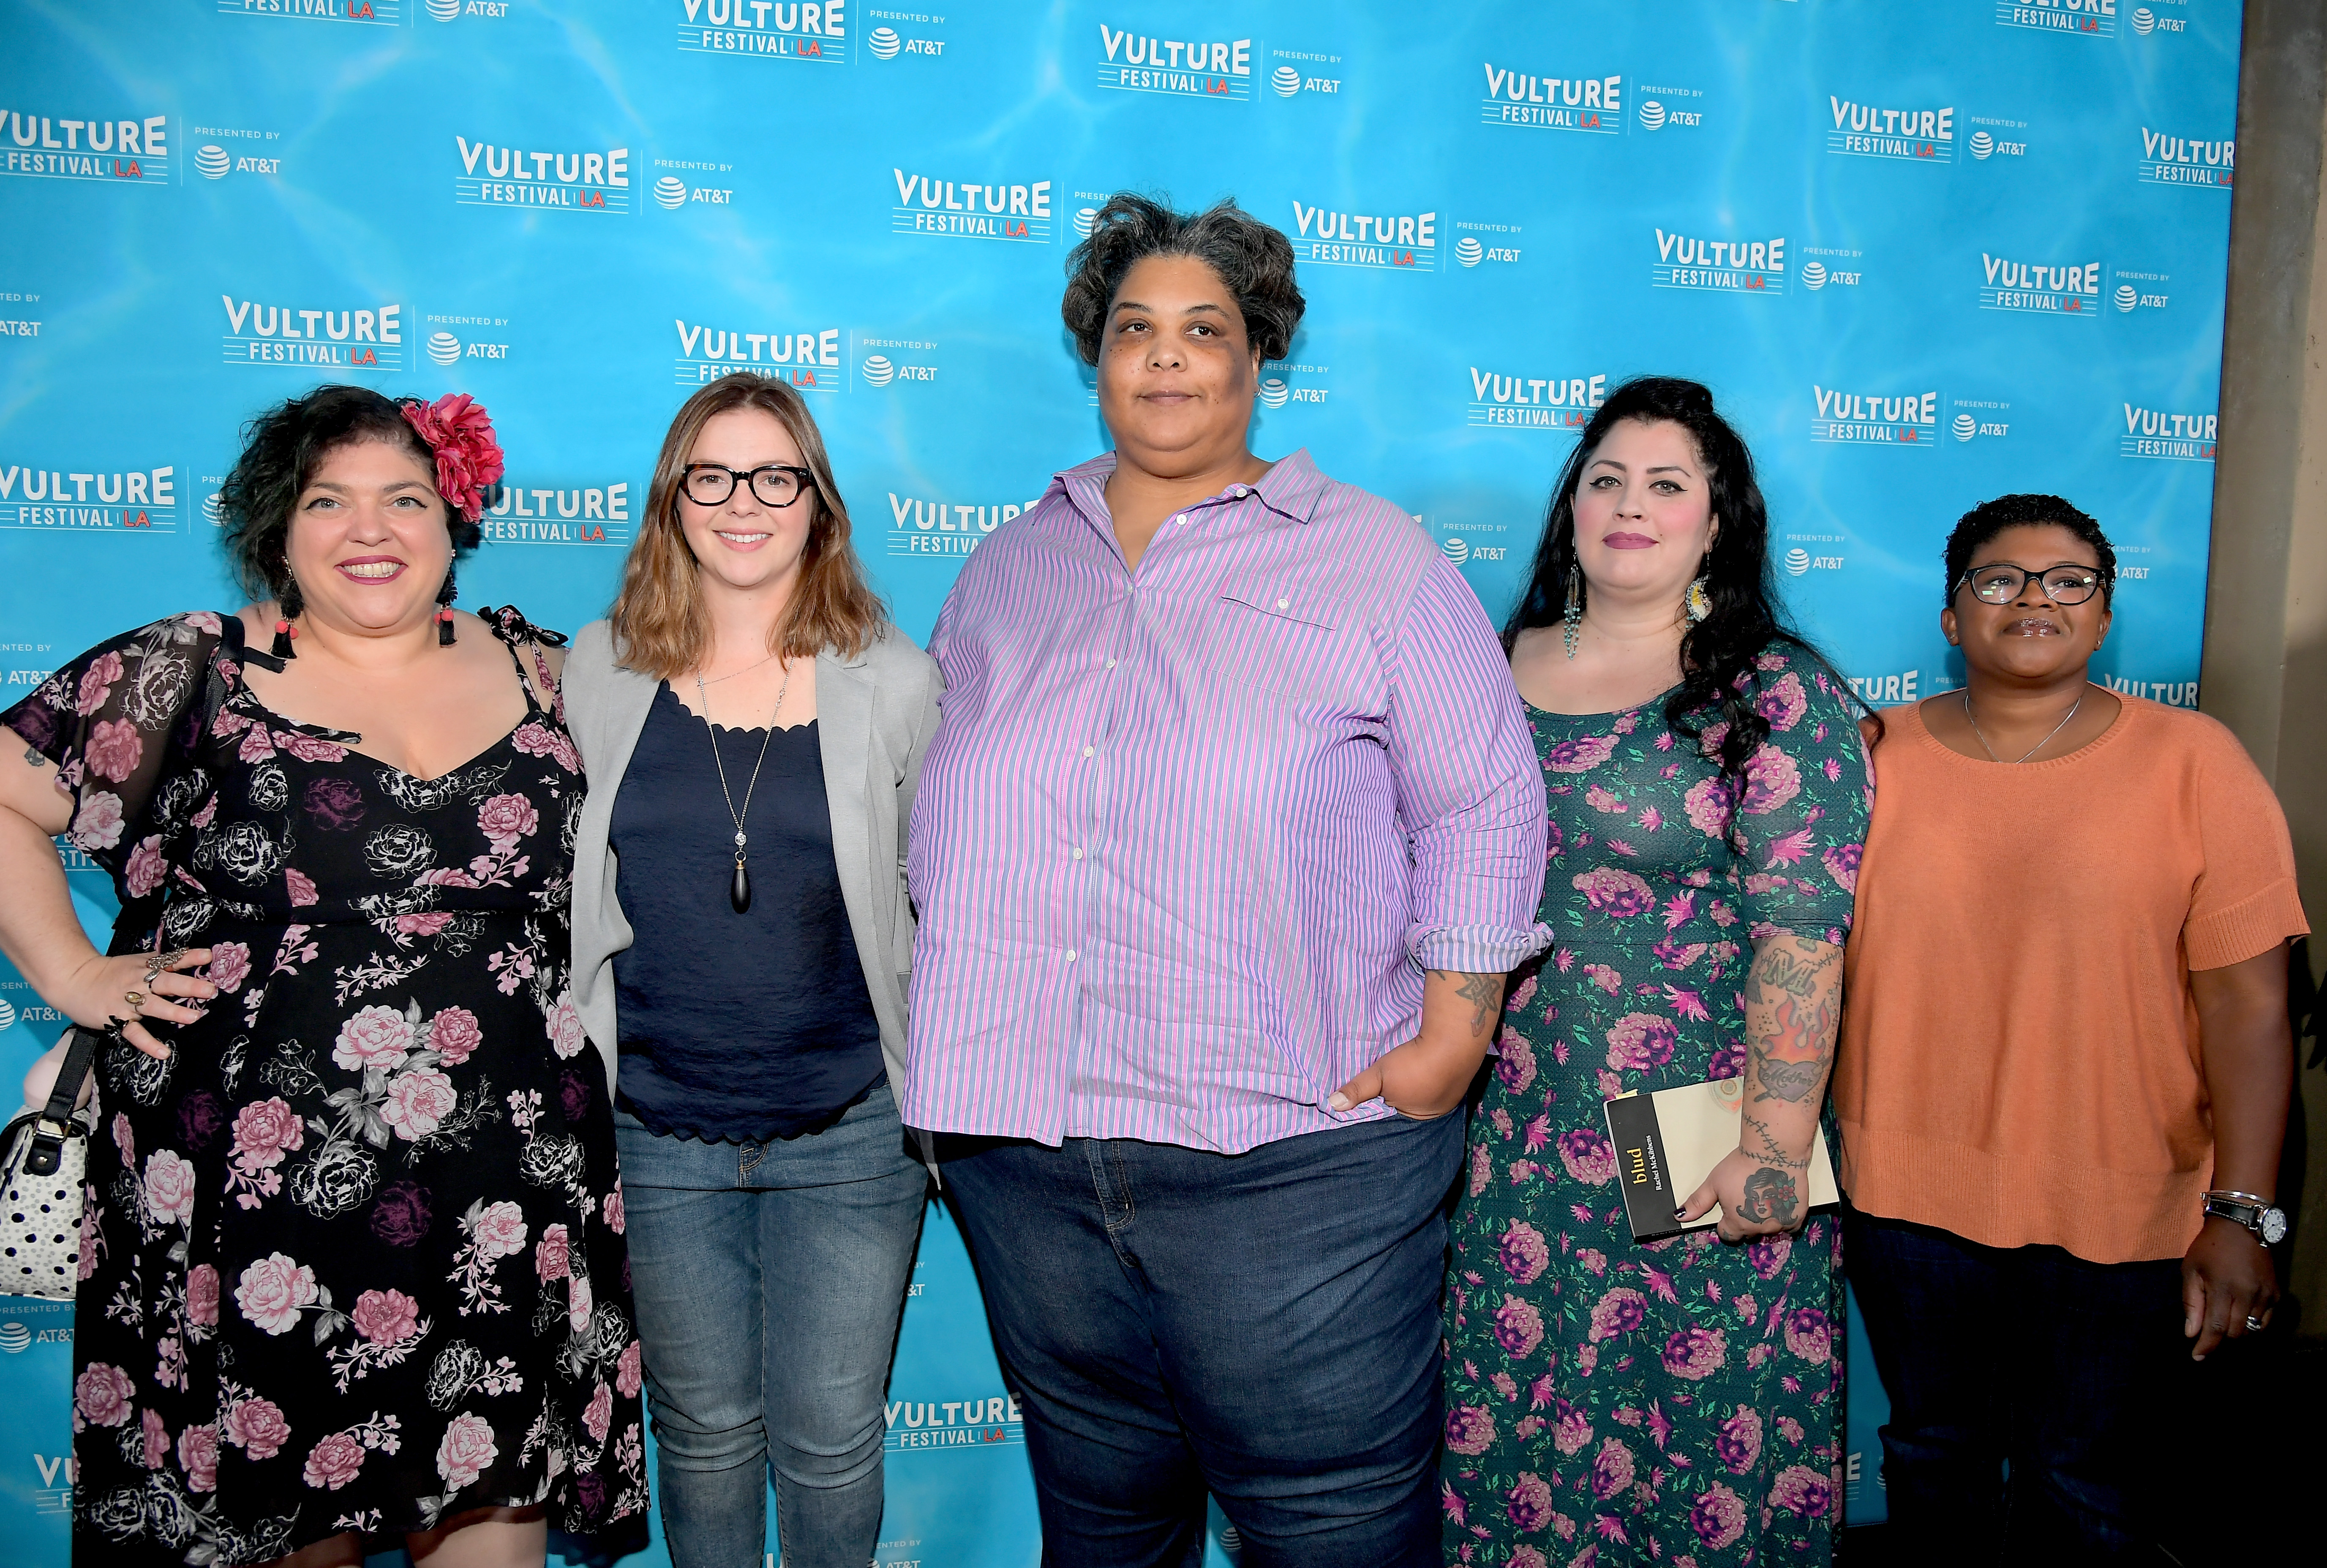 HOLLYWOOD, CA - NOVEMBER 18:  (L-R) Writer Randa Jarrar, actor Amber Tamblyn, writer Roxanne Gay, writer Rachel McKibbens, and writer Attica Locke attend the 'Feminist AF' panel during Vulture Festival LA Presented by AT&T at Hollywood Roosevelt Hotel on November 18, 2017 in Hollywood, California.  (Photo by Charley Gallay/Getty Images for Vulture Festival)